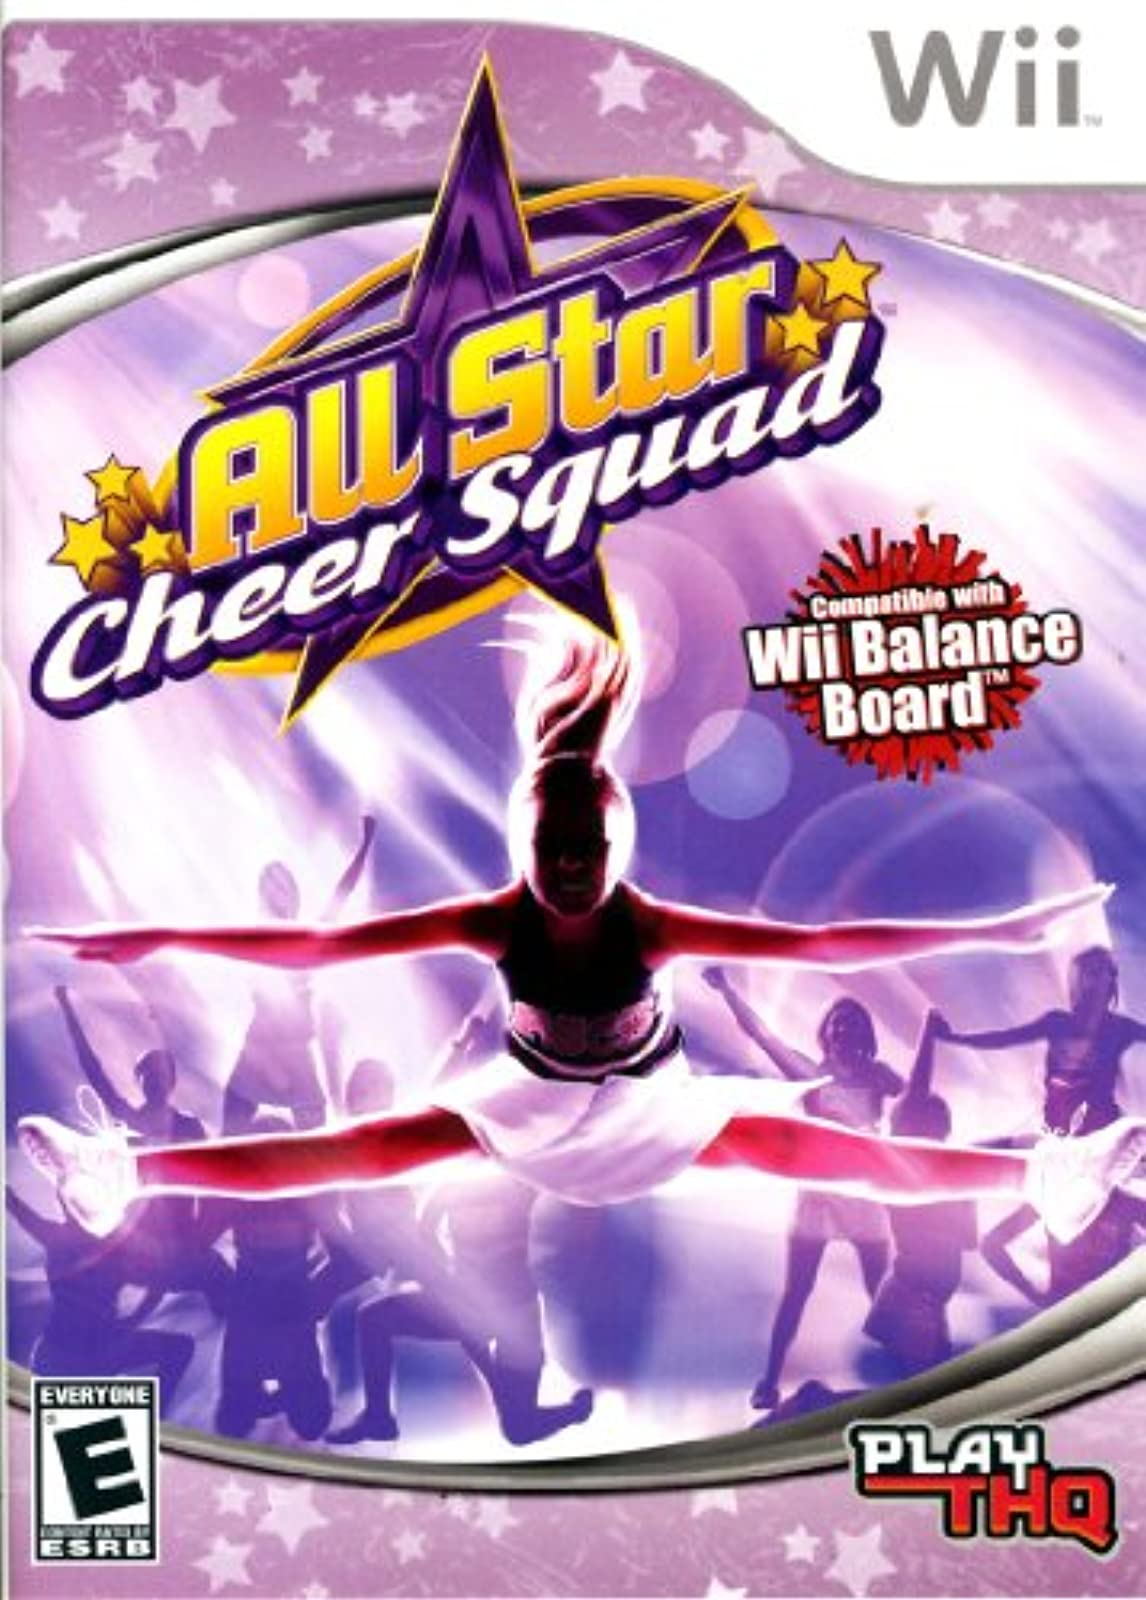 All Star Cheer Squad For Wii And Wii U Music